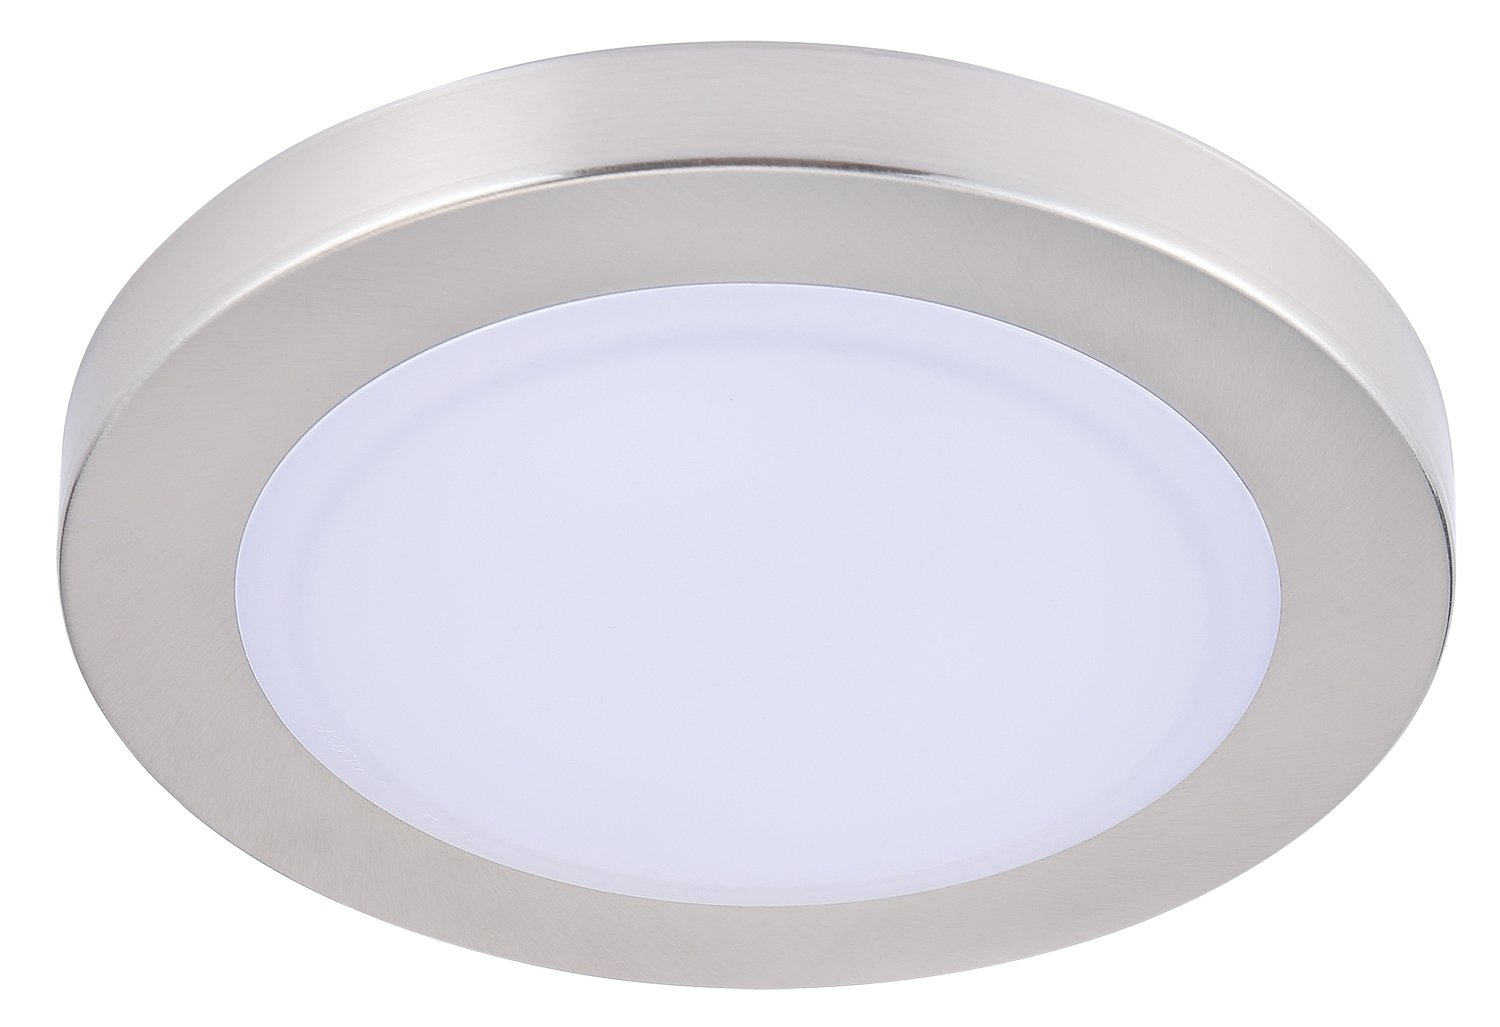 Cloudy Bay LMFFM712840BN 7.5 inch LED Mini Flush Mount Ceiling Light 4000K Cool White Dimmable 12W 840lm -100W Incandescent Fixture Equivalent,LED Flush Mount for Bathroom Hallway Entry, Wet Location